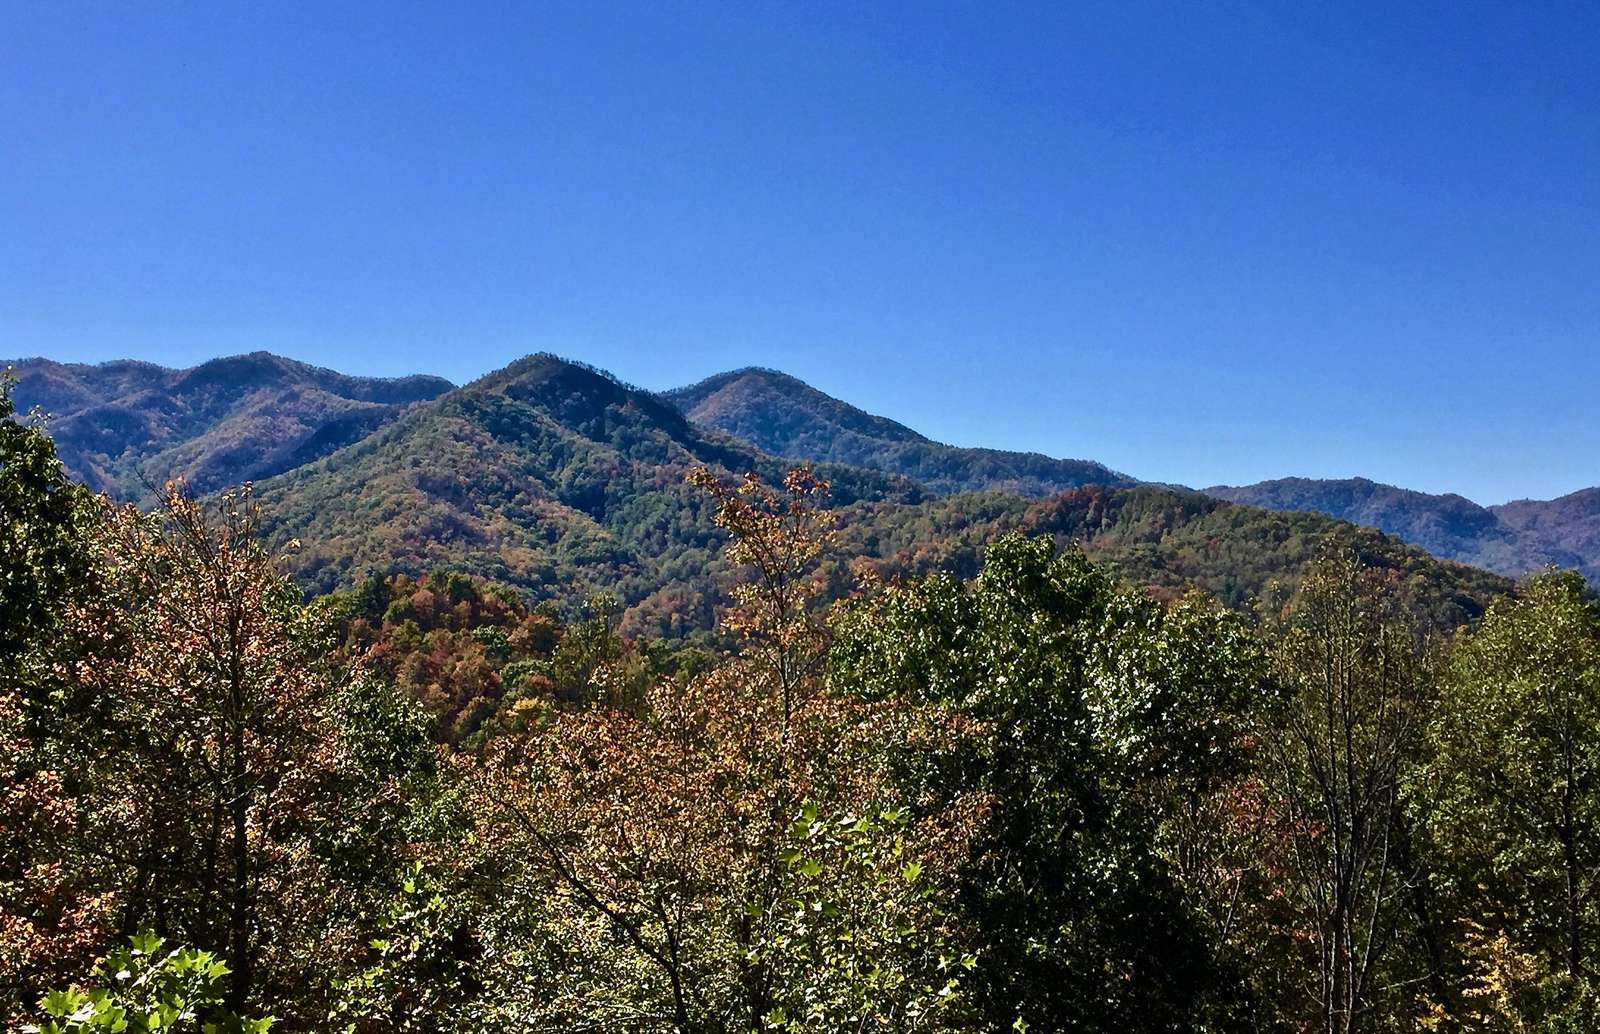 The Long Range Mountain Views are so Peacefully Present (photo taken from the deck).